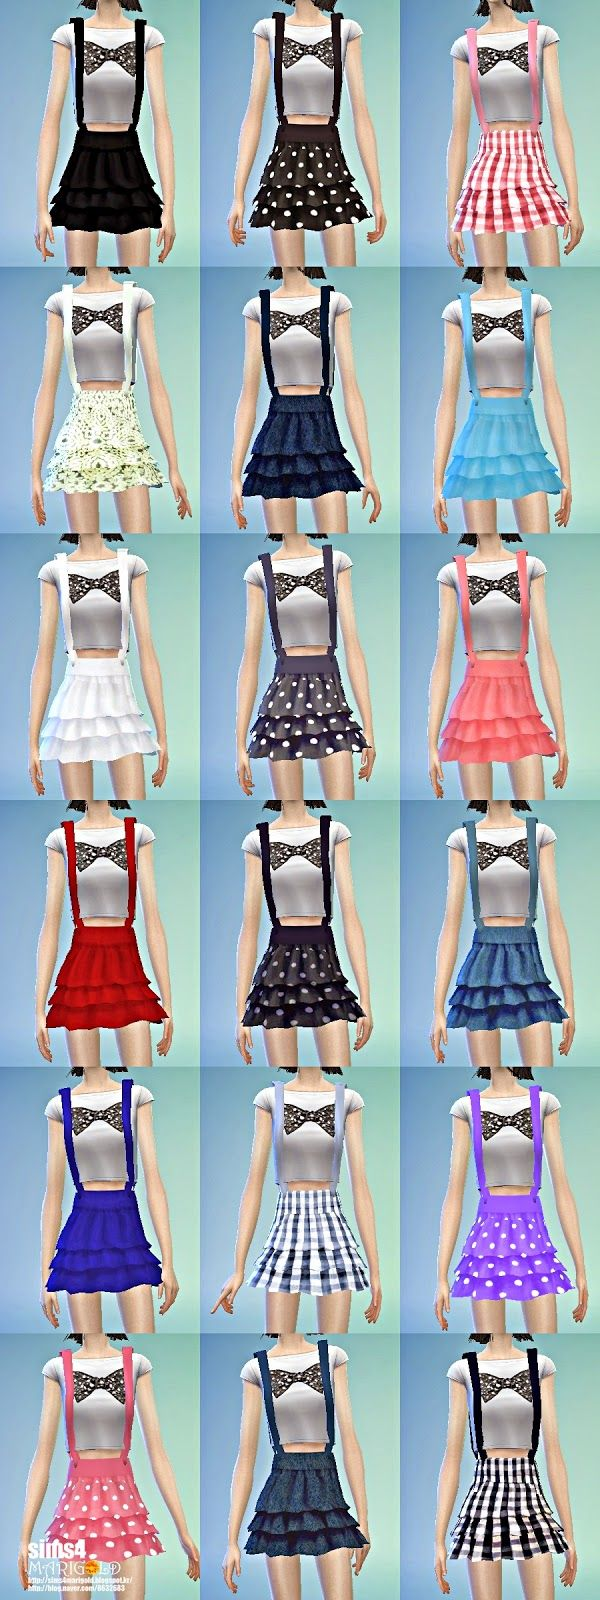 suspender tiered skirt_ tiered skirt with suspenders women's clothing _ ~ SIMS4 marigod